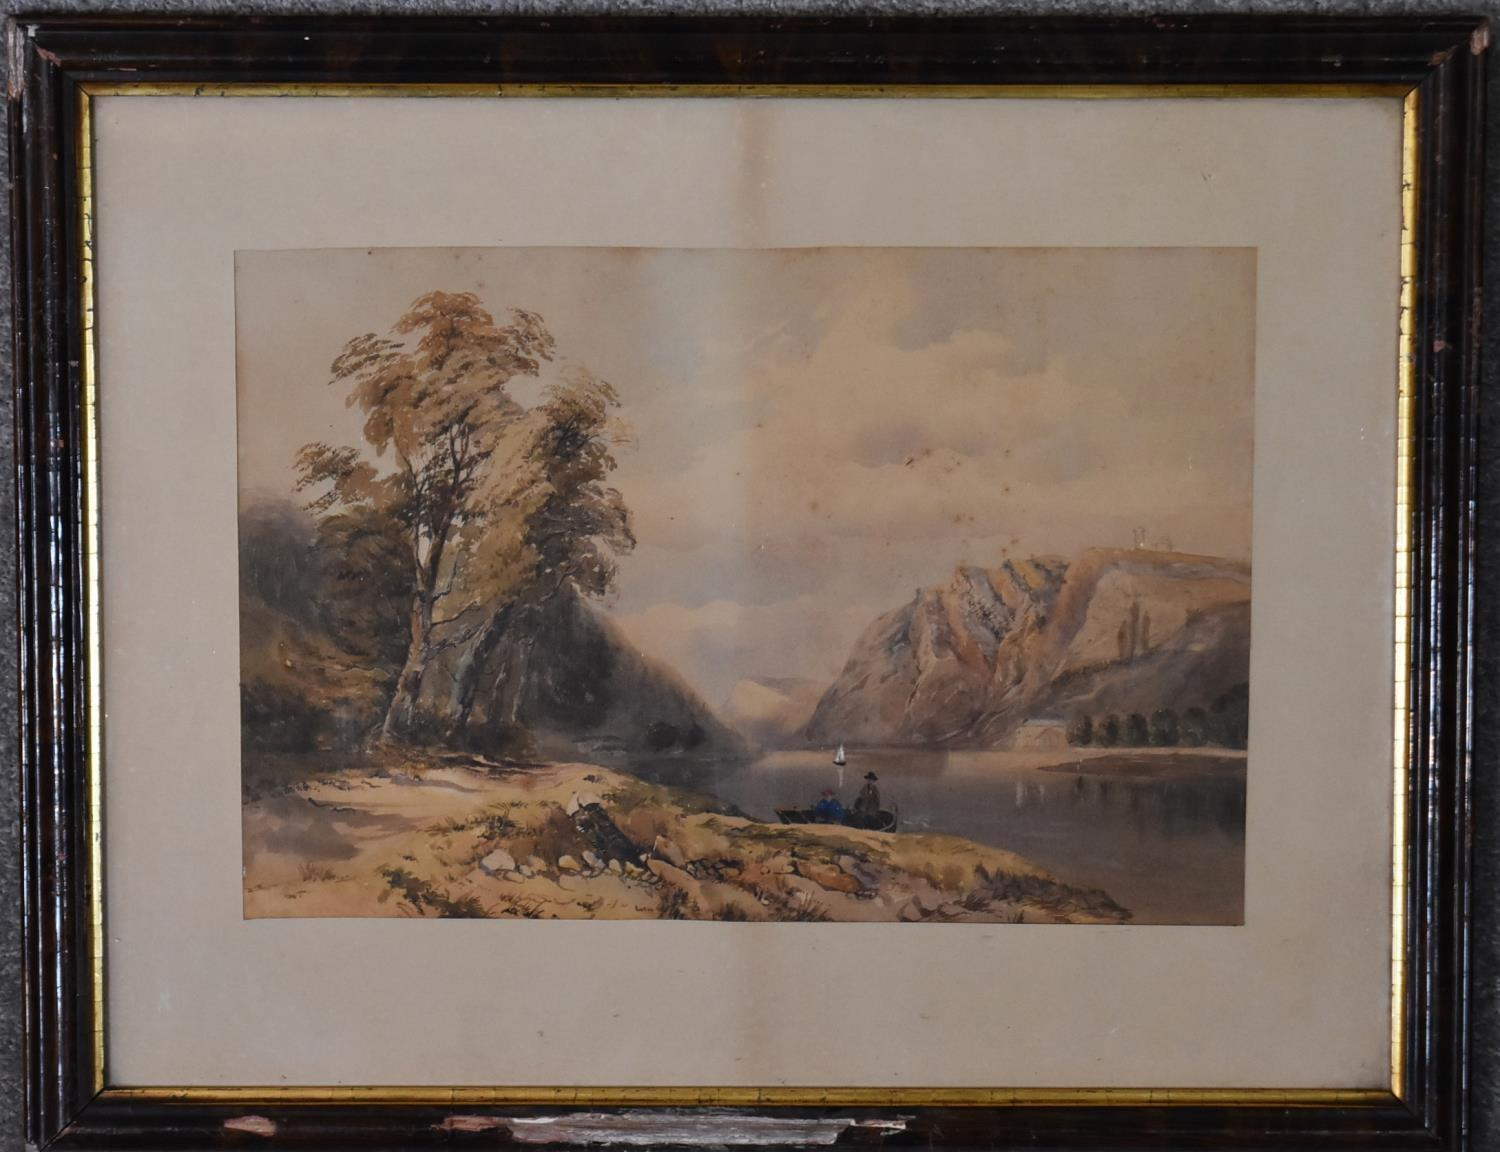 A framed and glazed watercolour of a rocky beach scene and two other framed and glazed watercolours. - Image 3 of 6